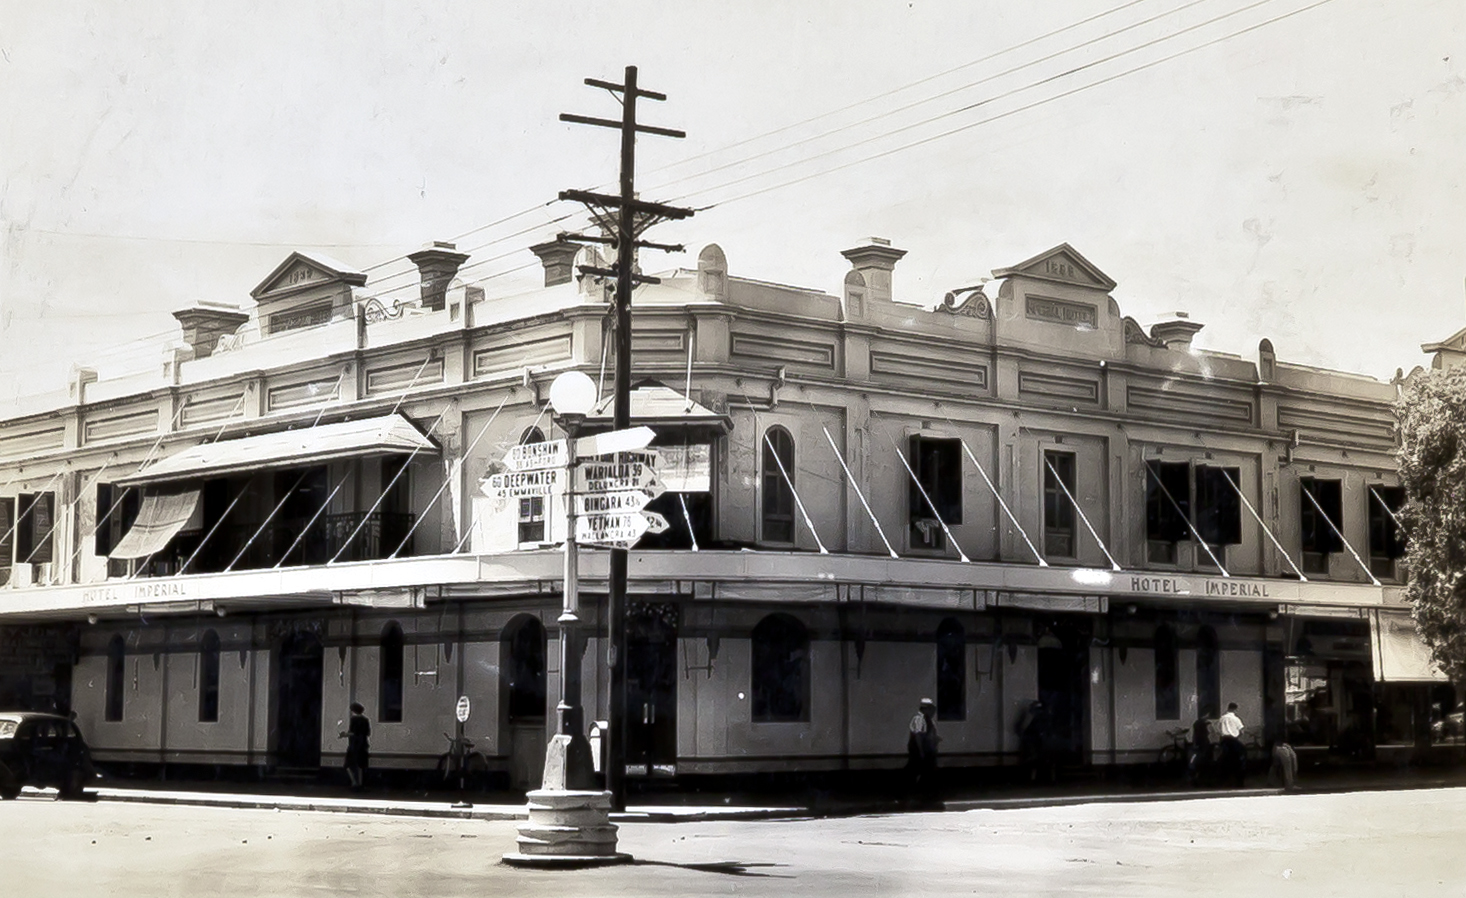 Imperial Hotel, Inverell